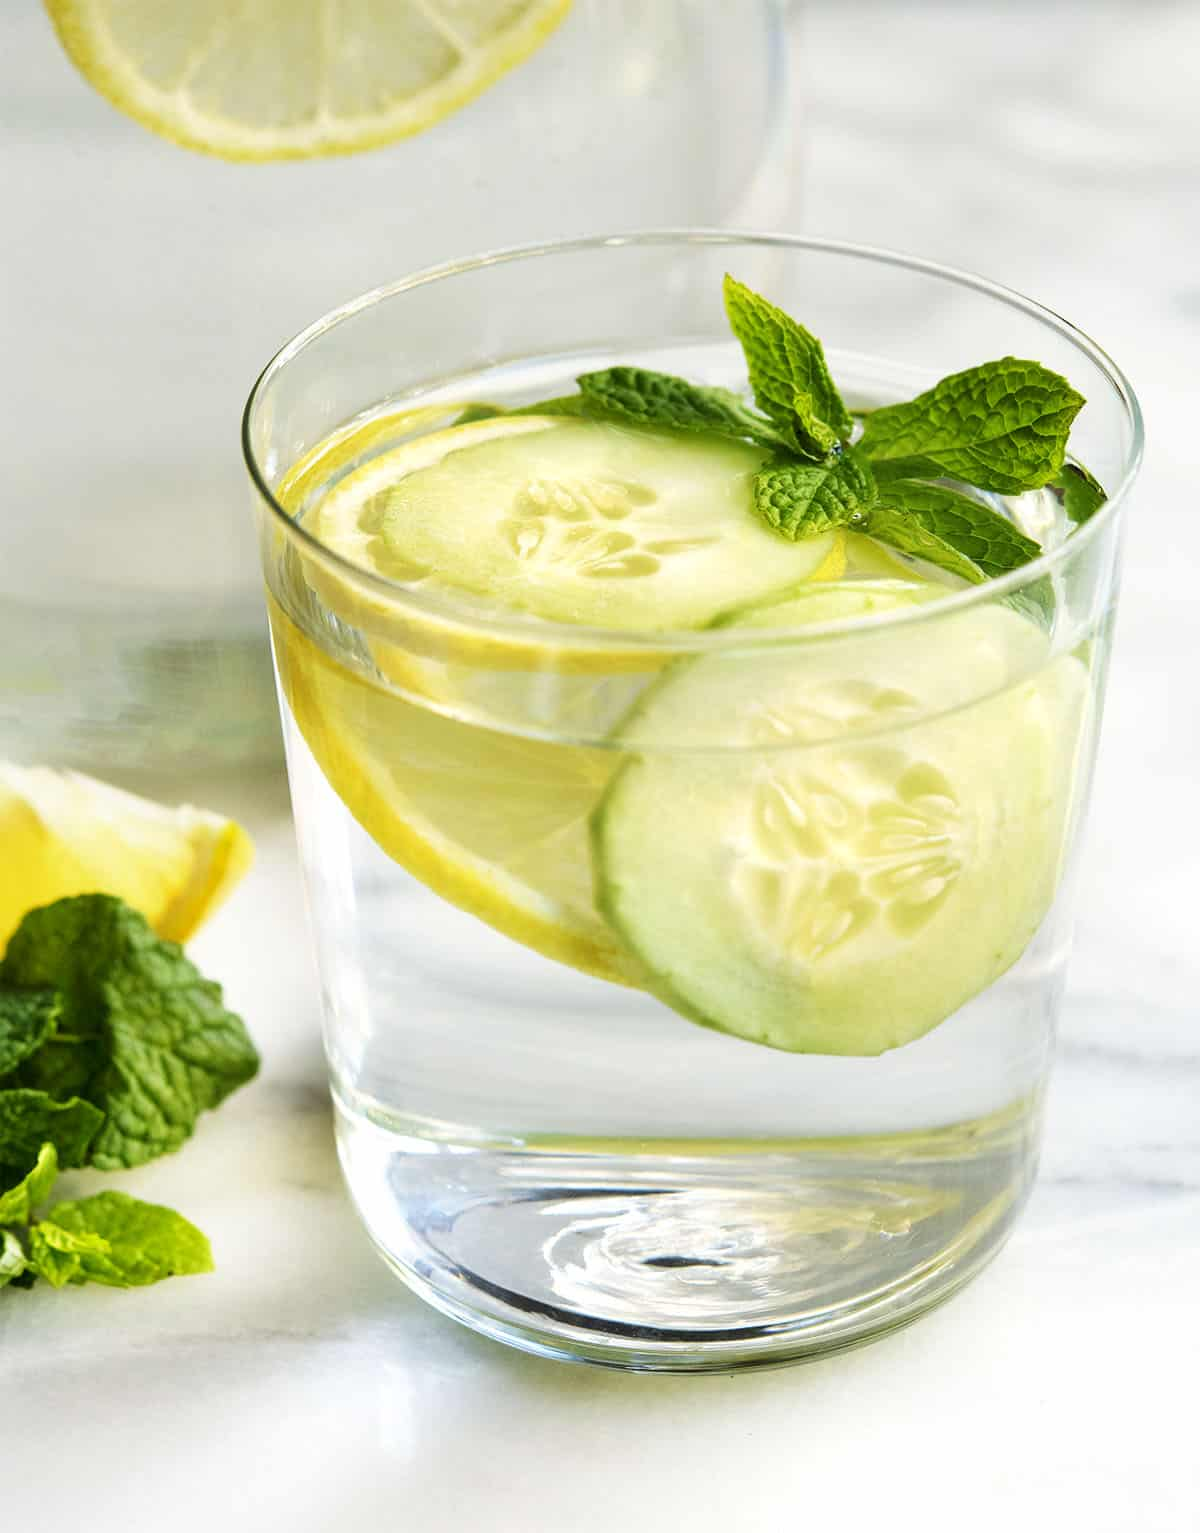 Cucumber Lemon Mint Water in a glass tumbler